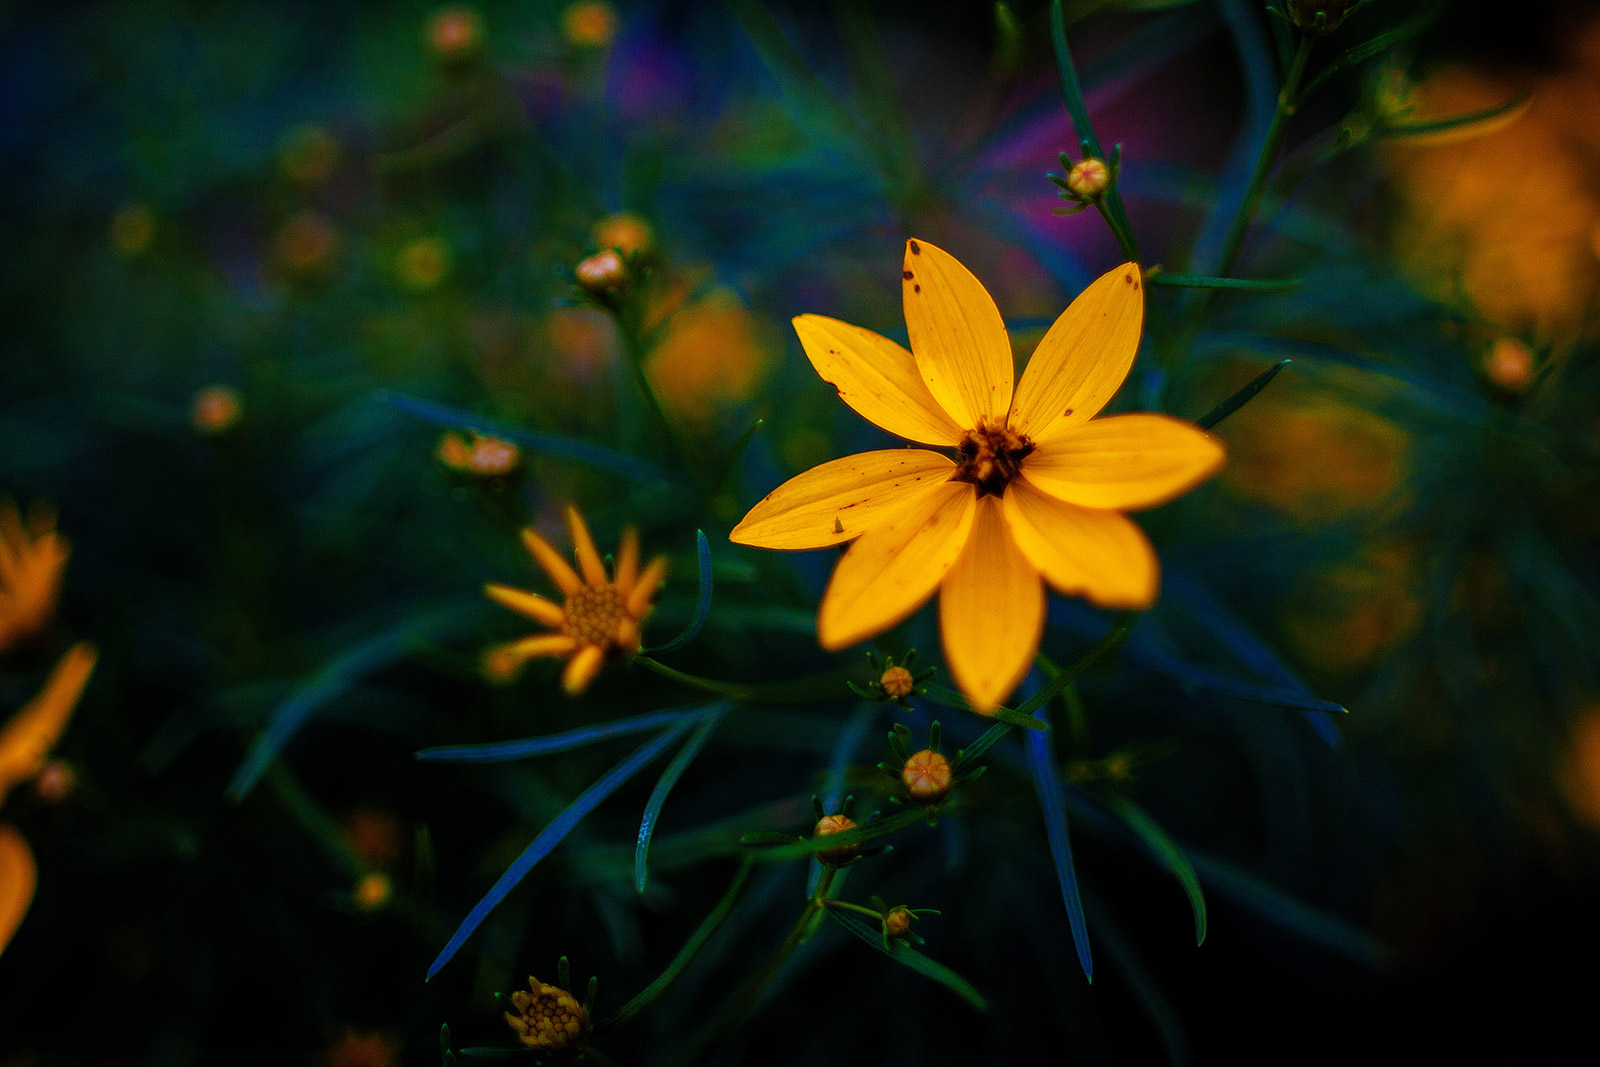 Flowers Photography By Sean Rose